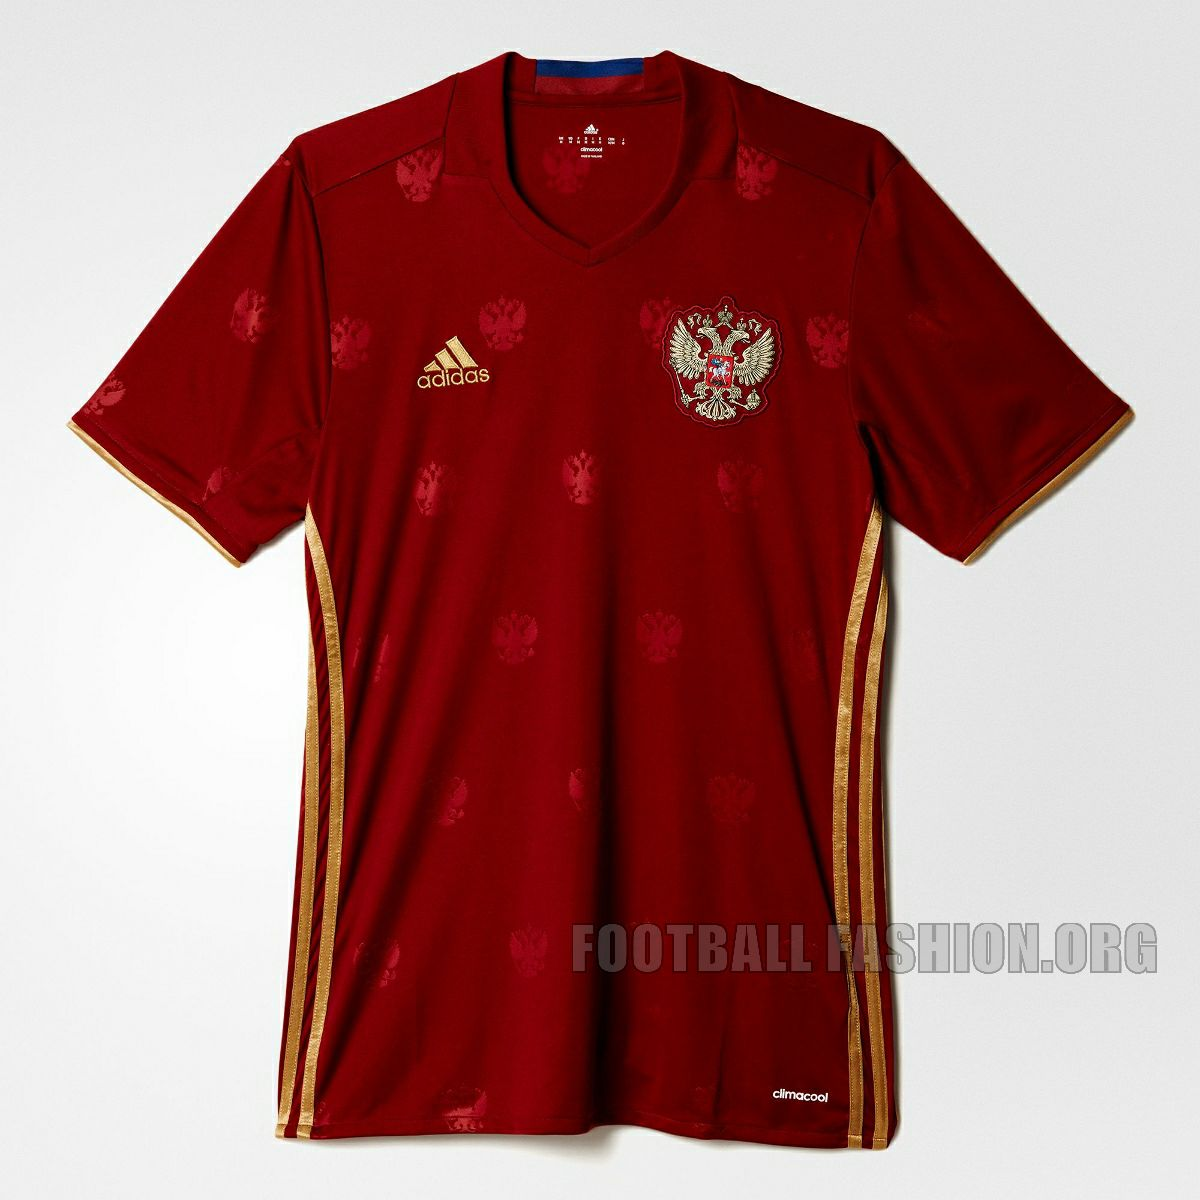 8eb91a52 adidas Russia Euro 2012 Home Soccer Jersey Brand New Red Men's Clothing  Activewear Tops